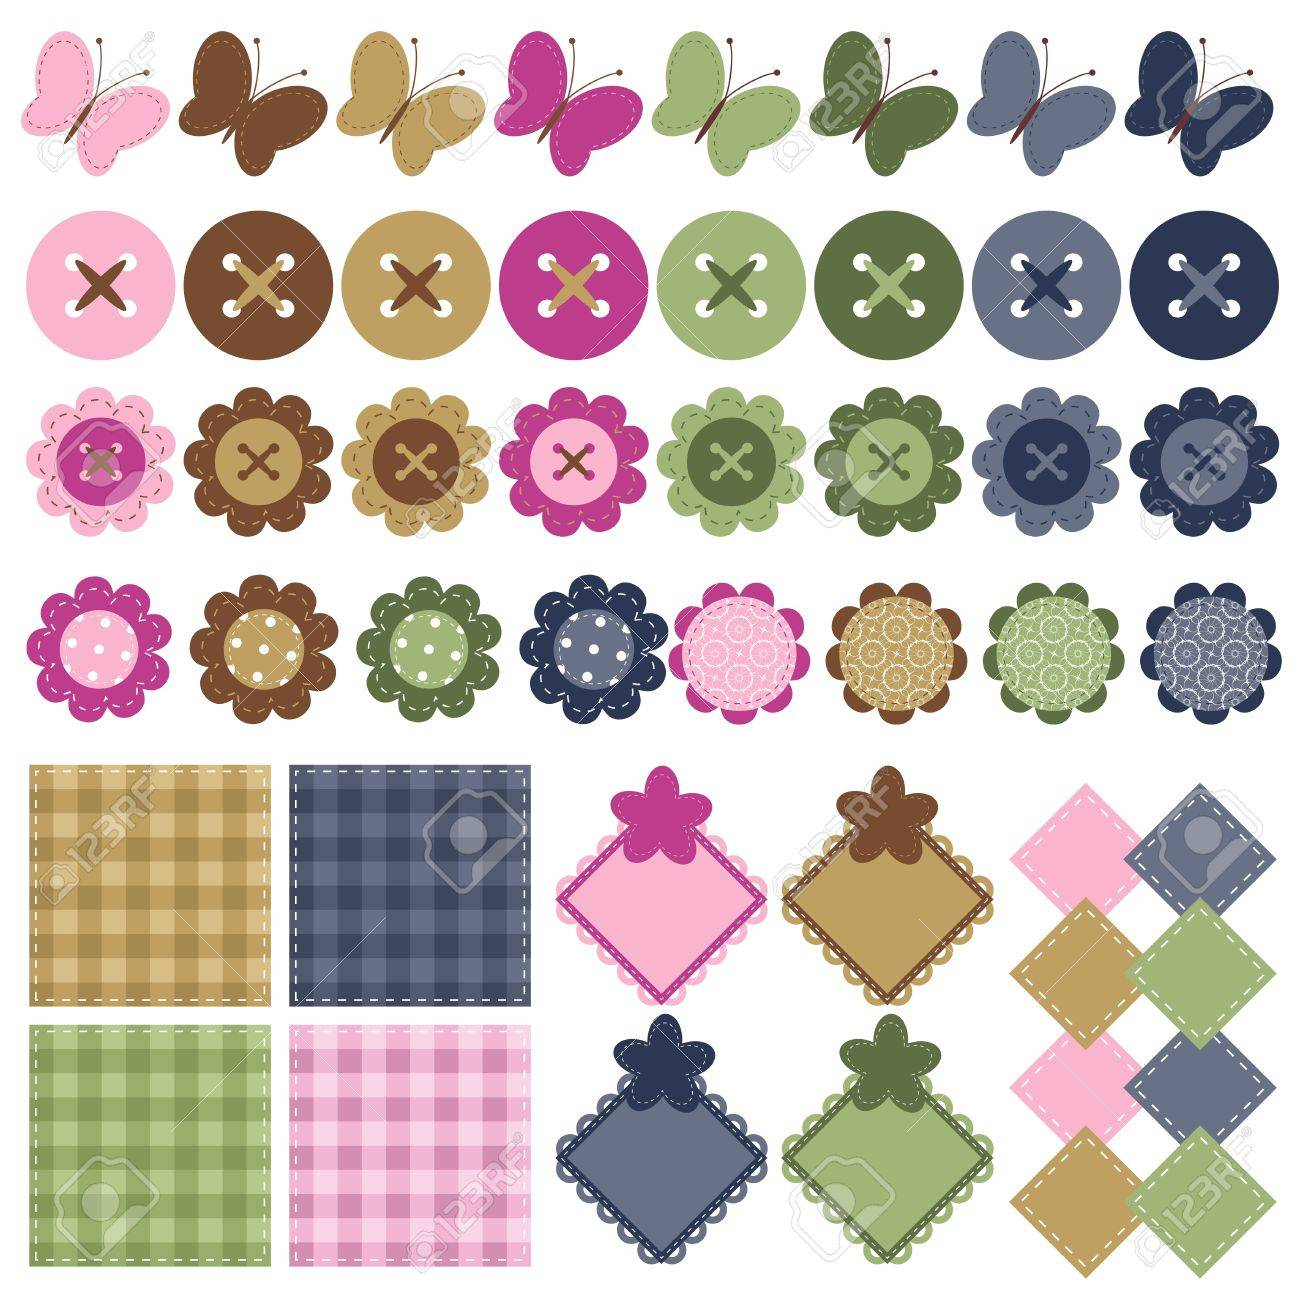 scrapbook objects with lace on white background Stock Vector - 13367676